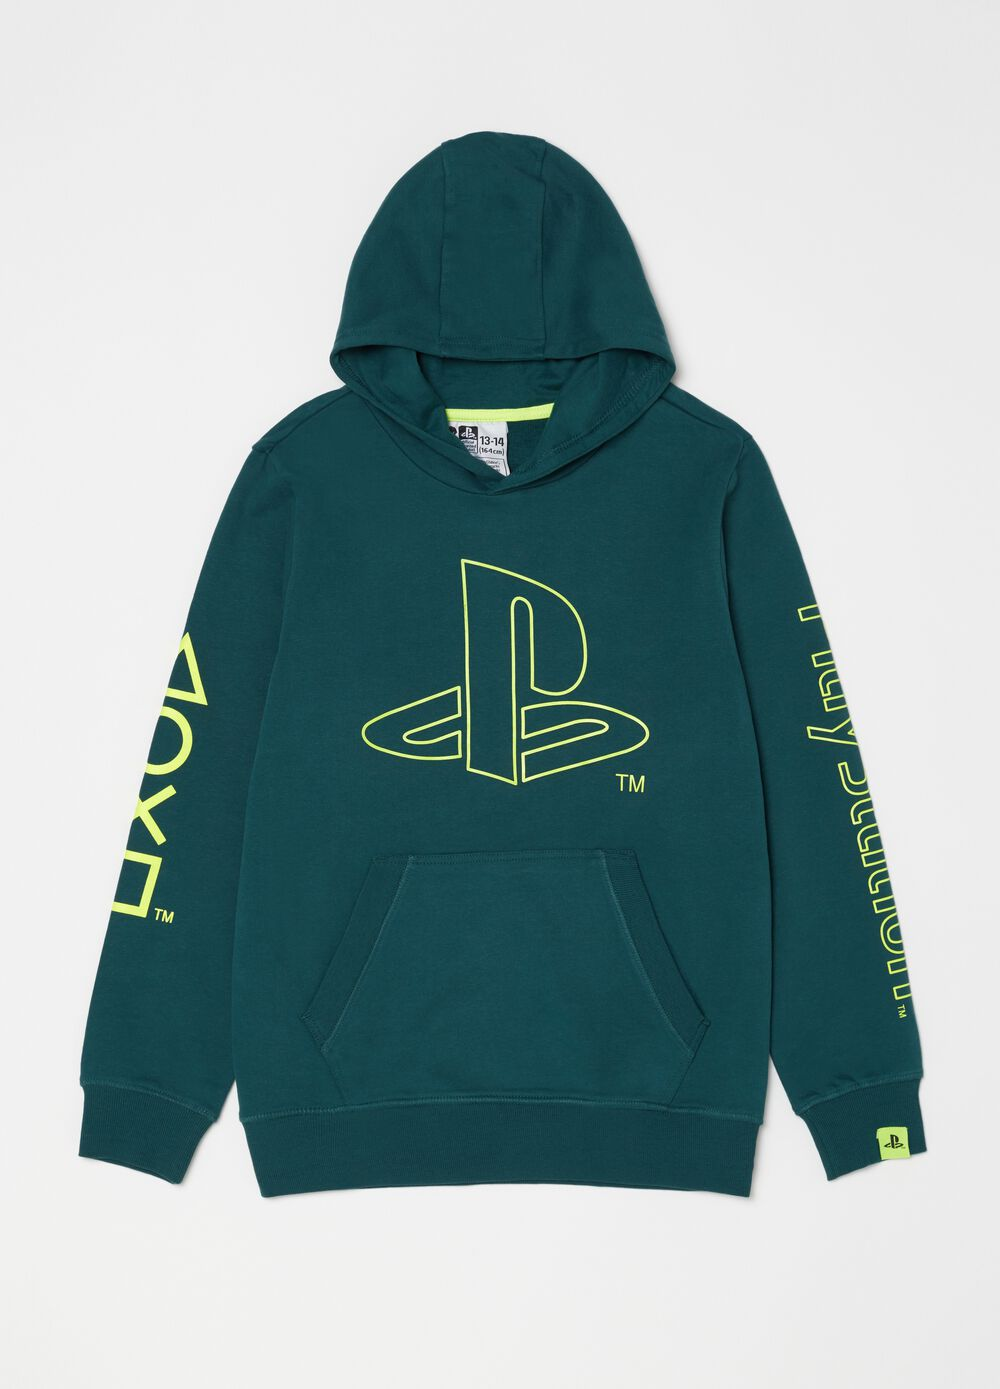 Sweatshirt with round neck and Playstation print